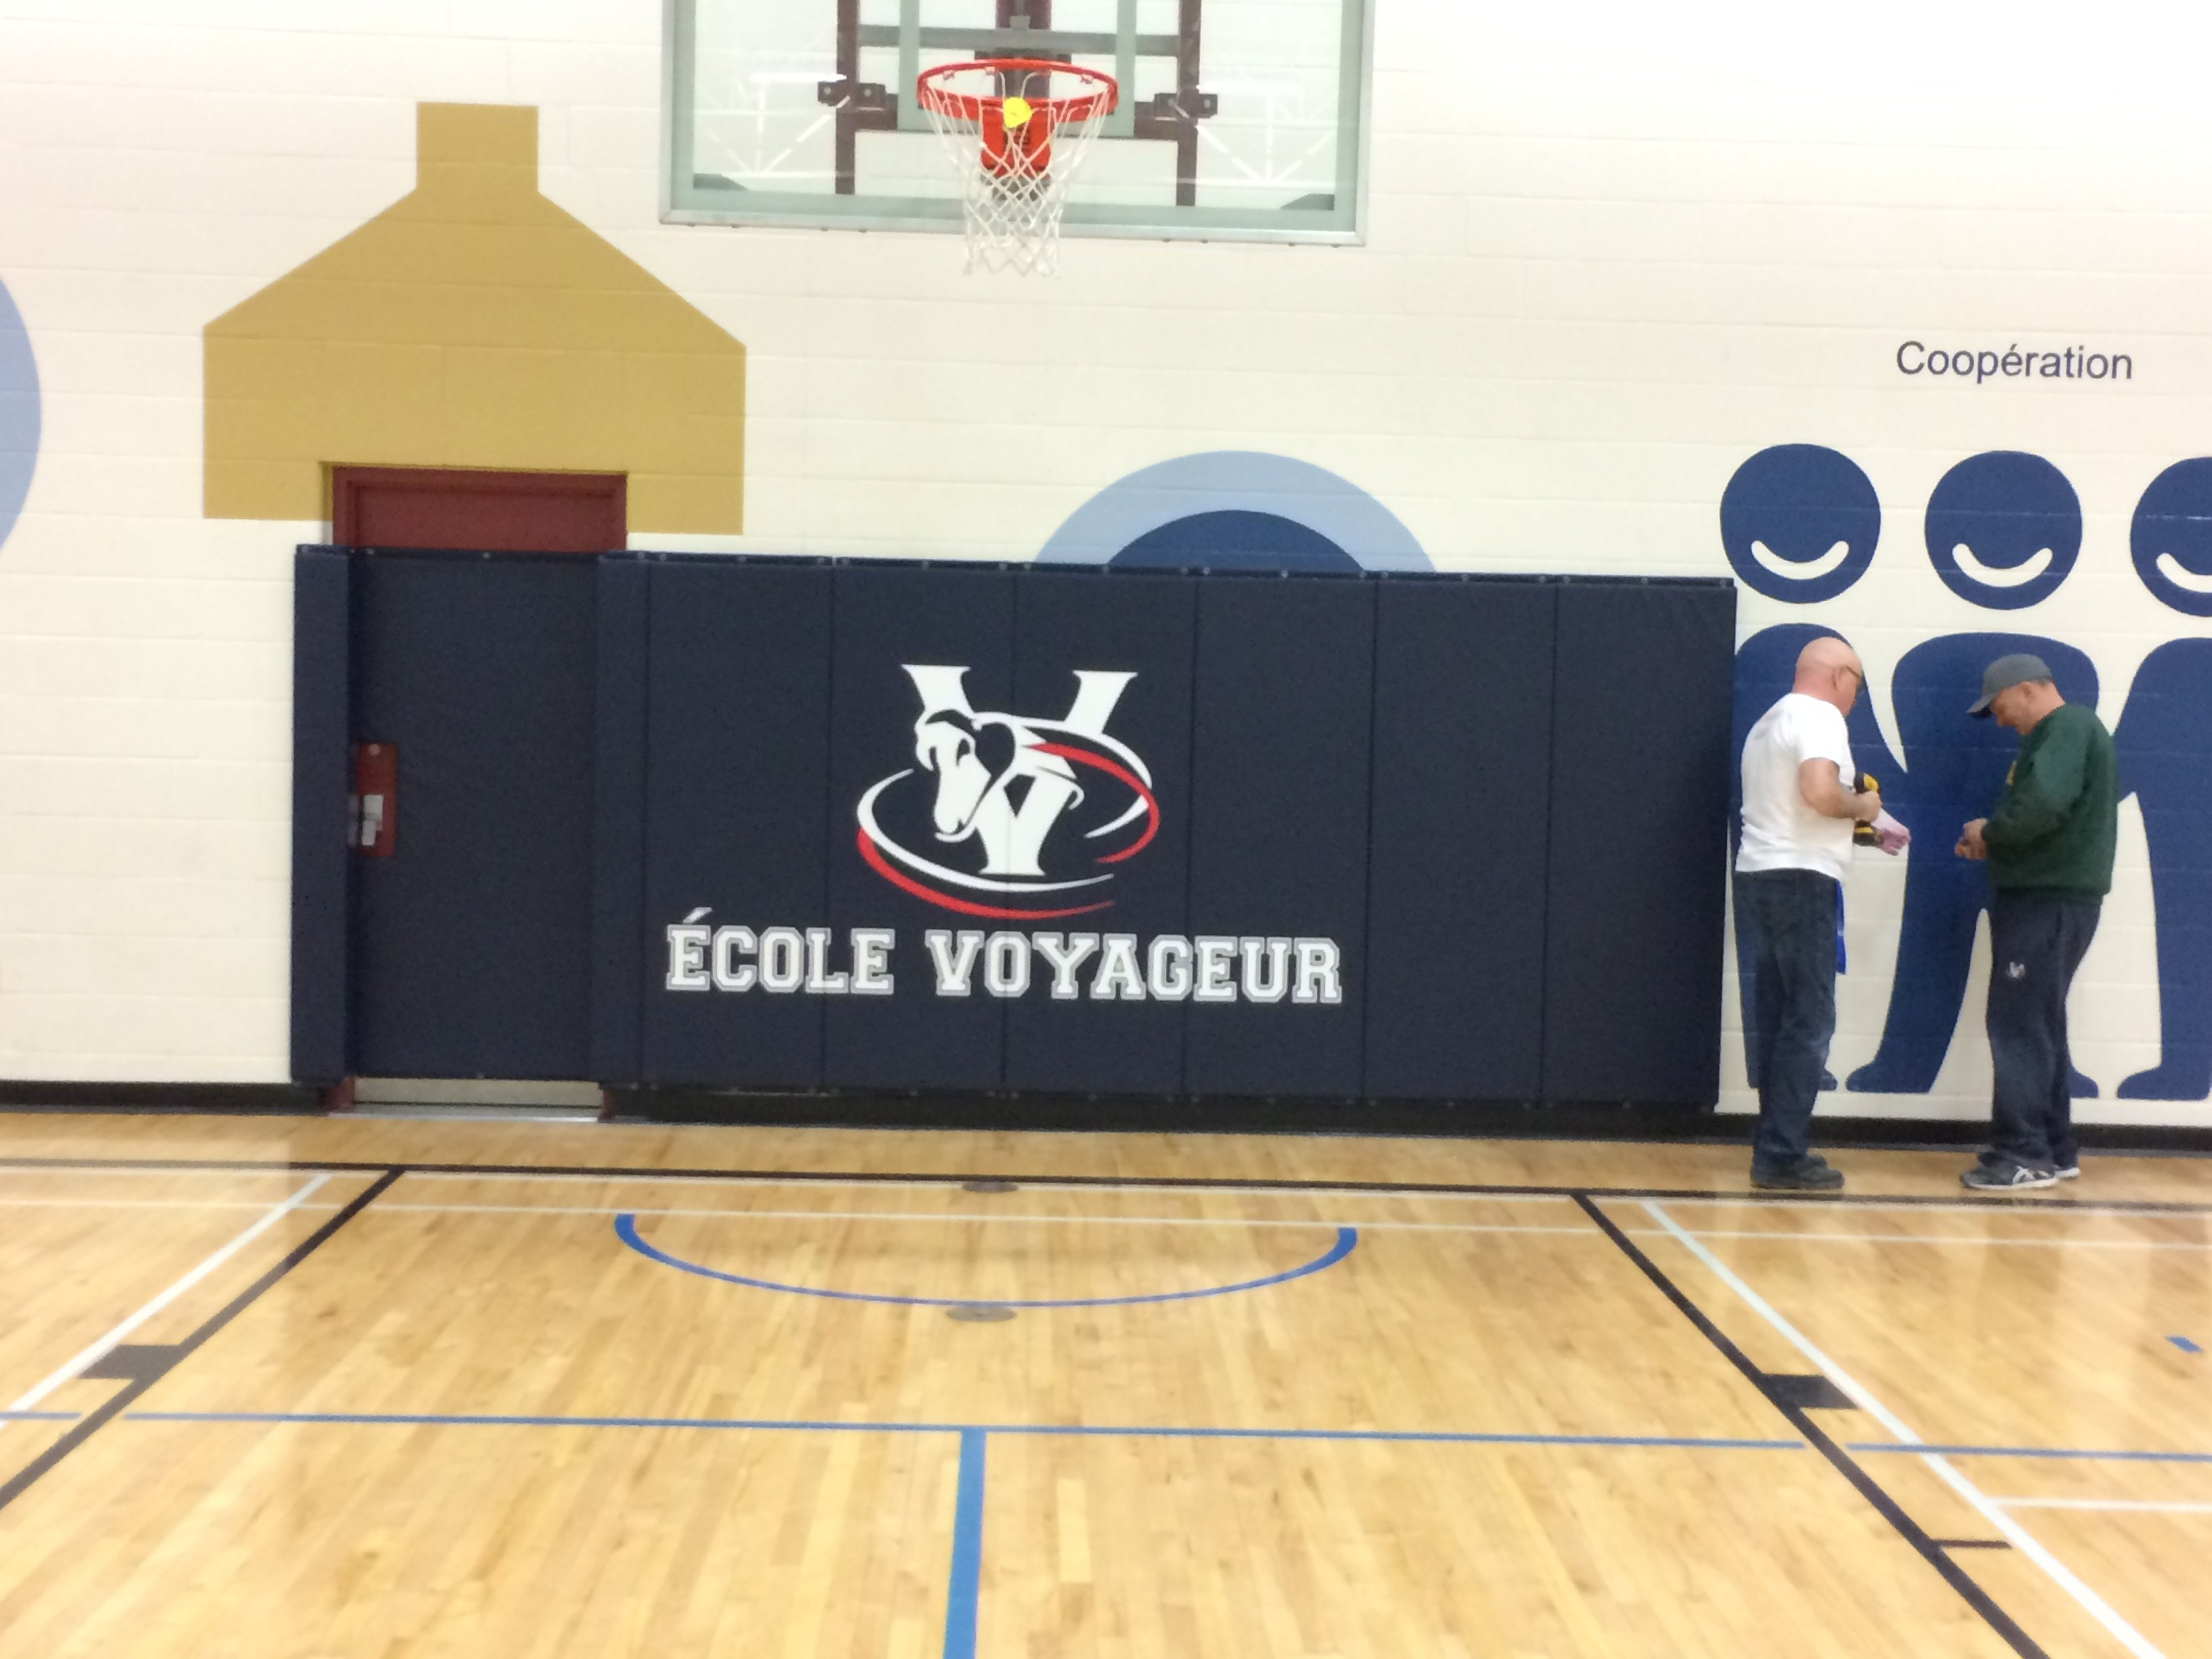 wall-and-door-padding-ecole-voyager.jpg